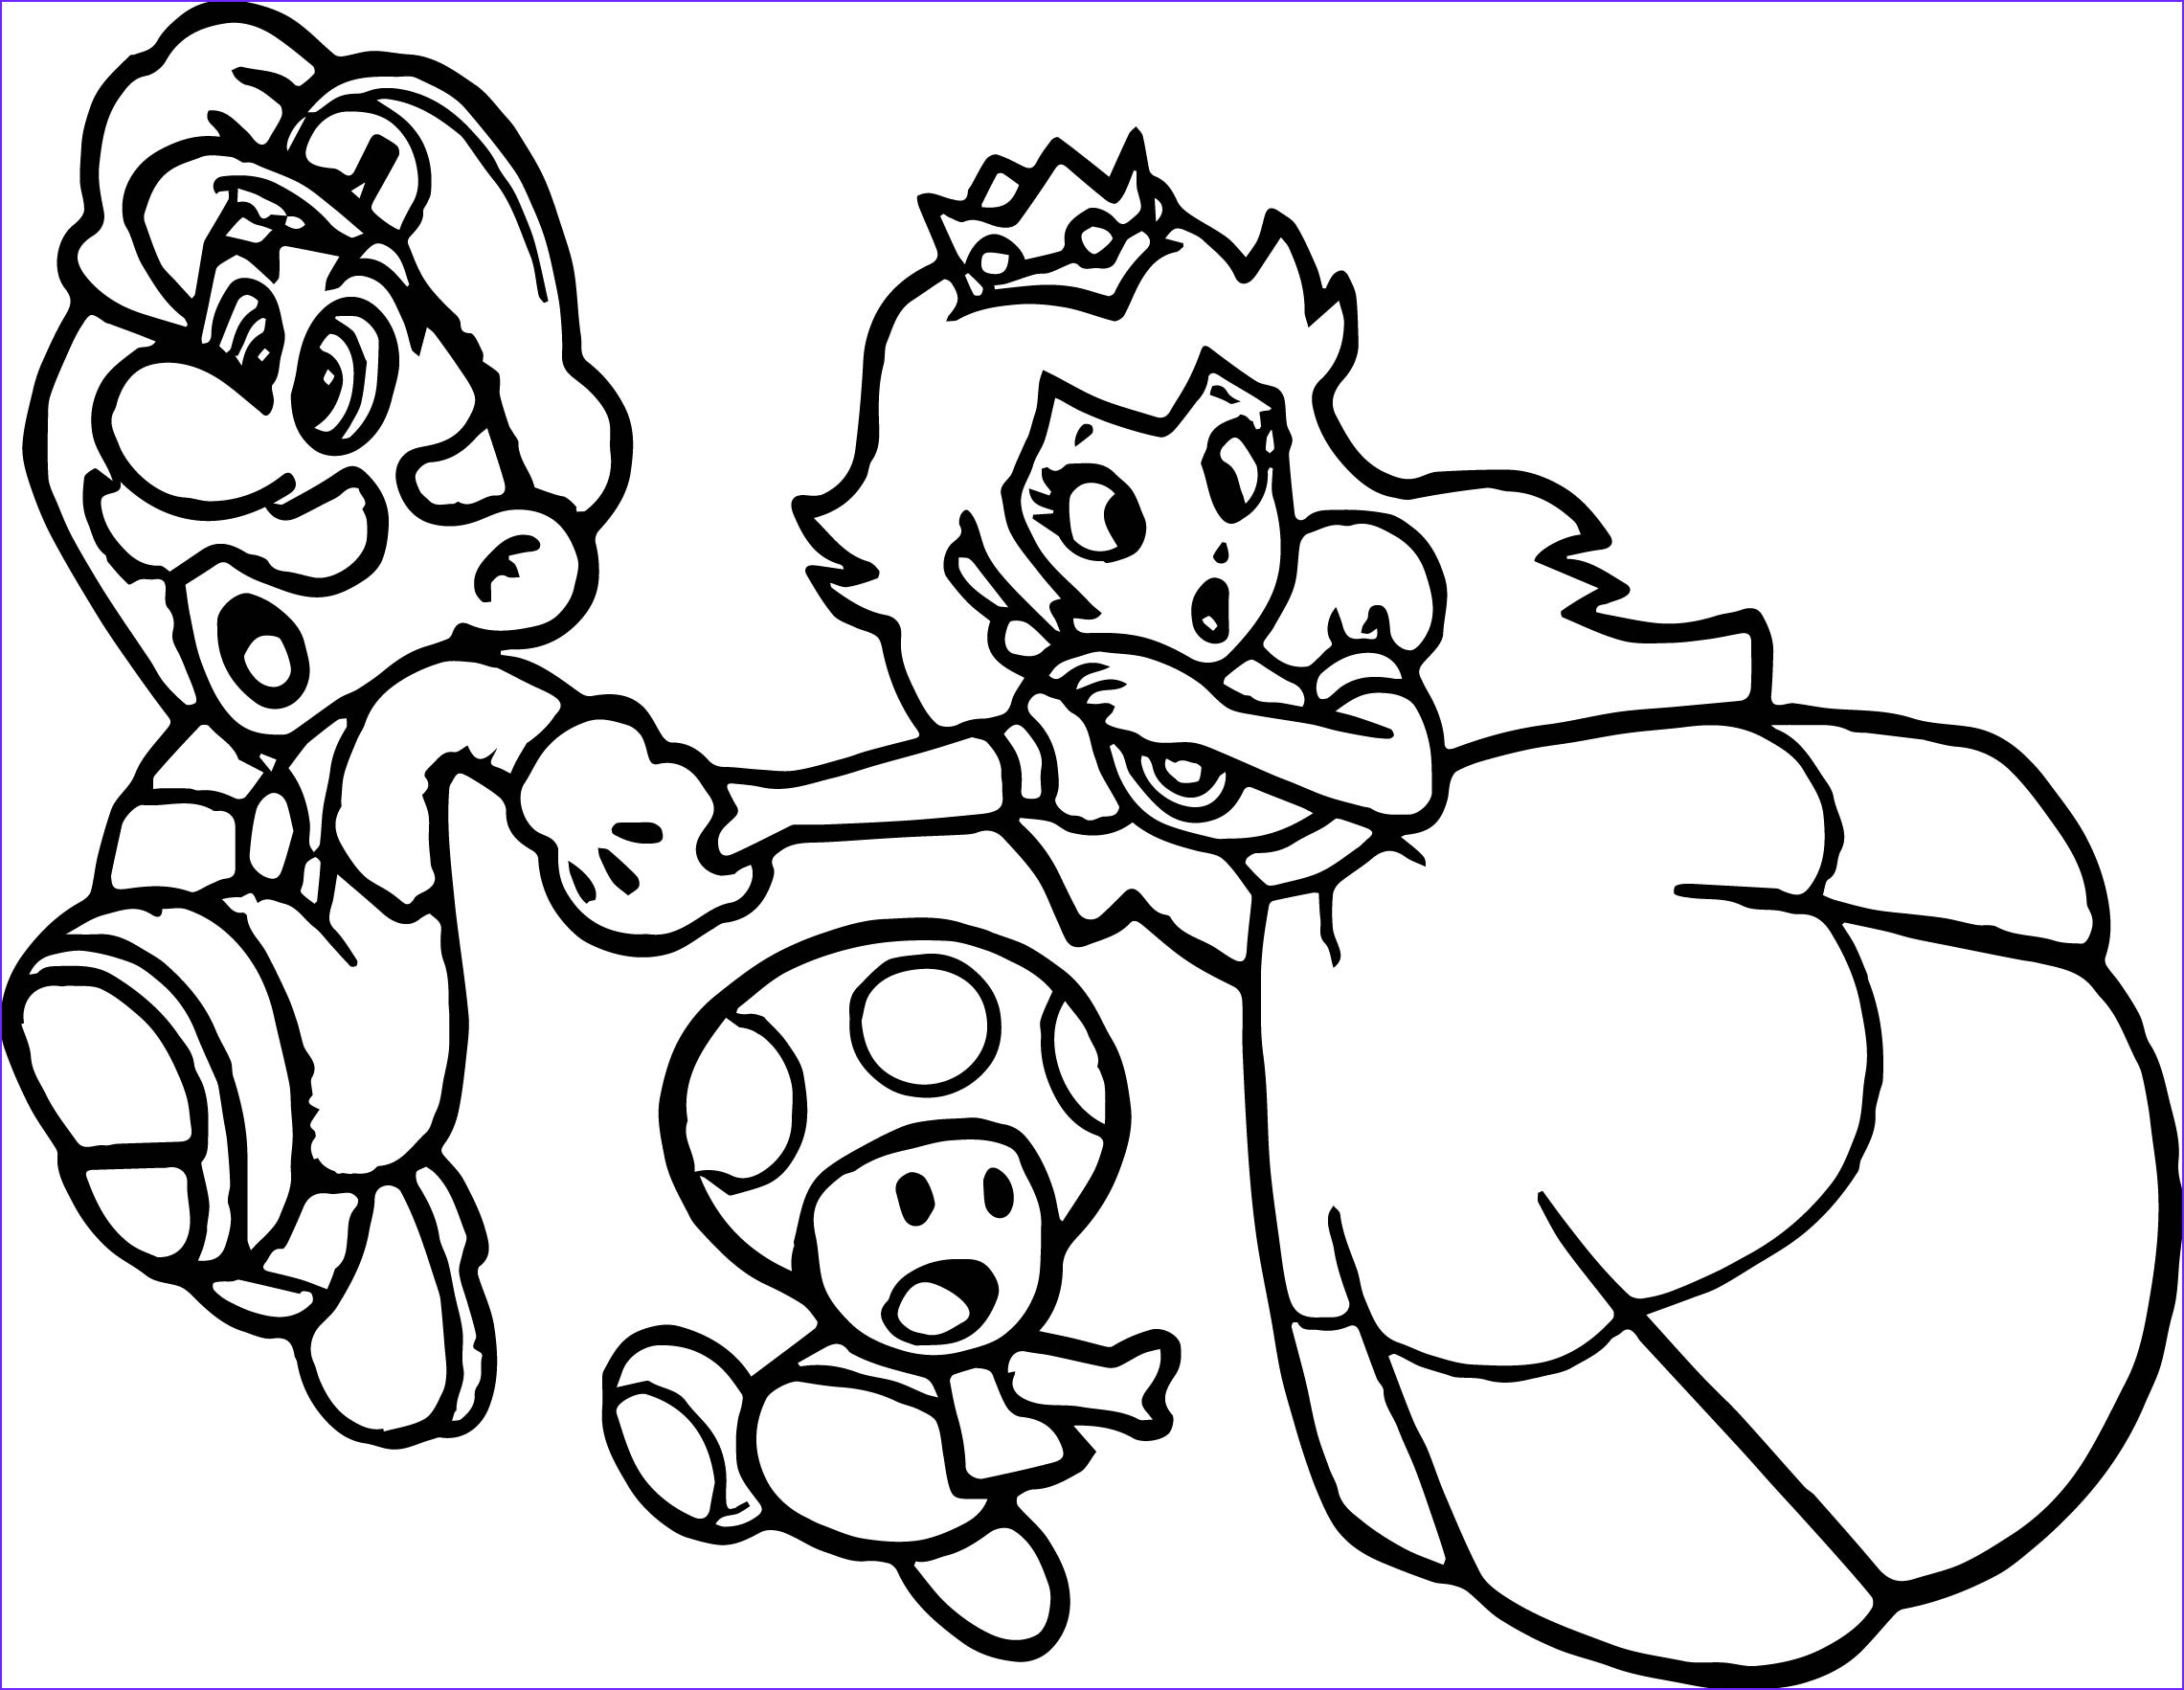 Mairo Coloring Pages Best Of Photos Mario Odyssey Coloring Pages Printable